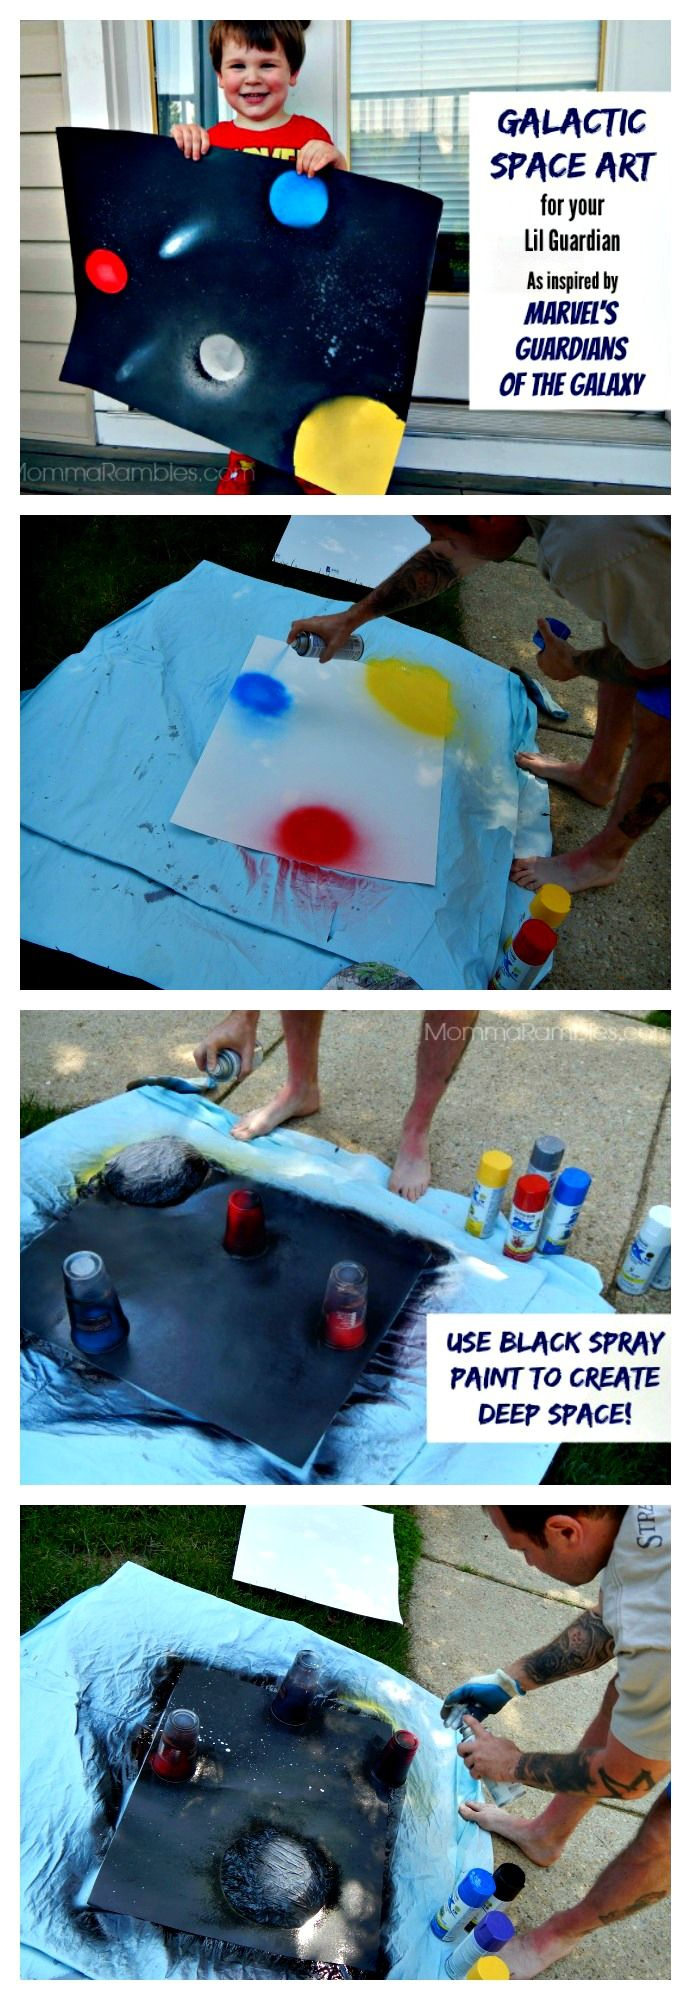 390 best geek craft day ideas images on pinterest birthdays 390 best geek craft day ideas images on pinterest birthdays feltro and day care solutioingenieria Gallery